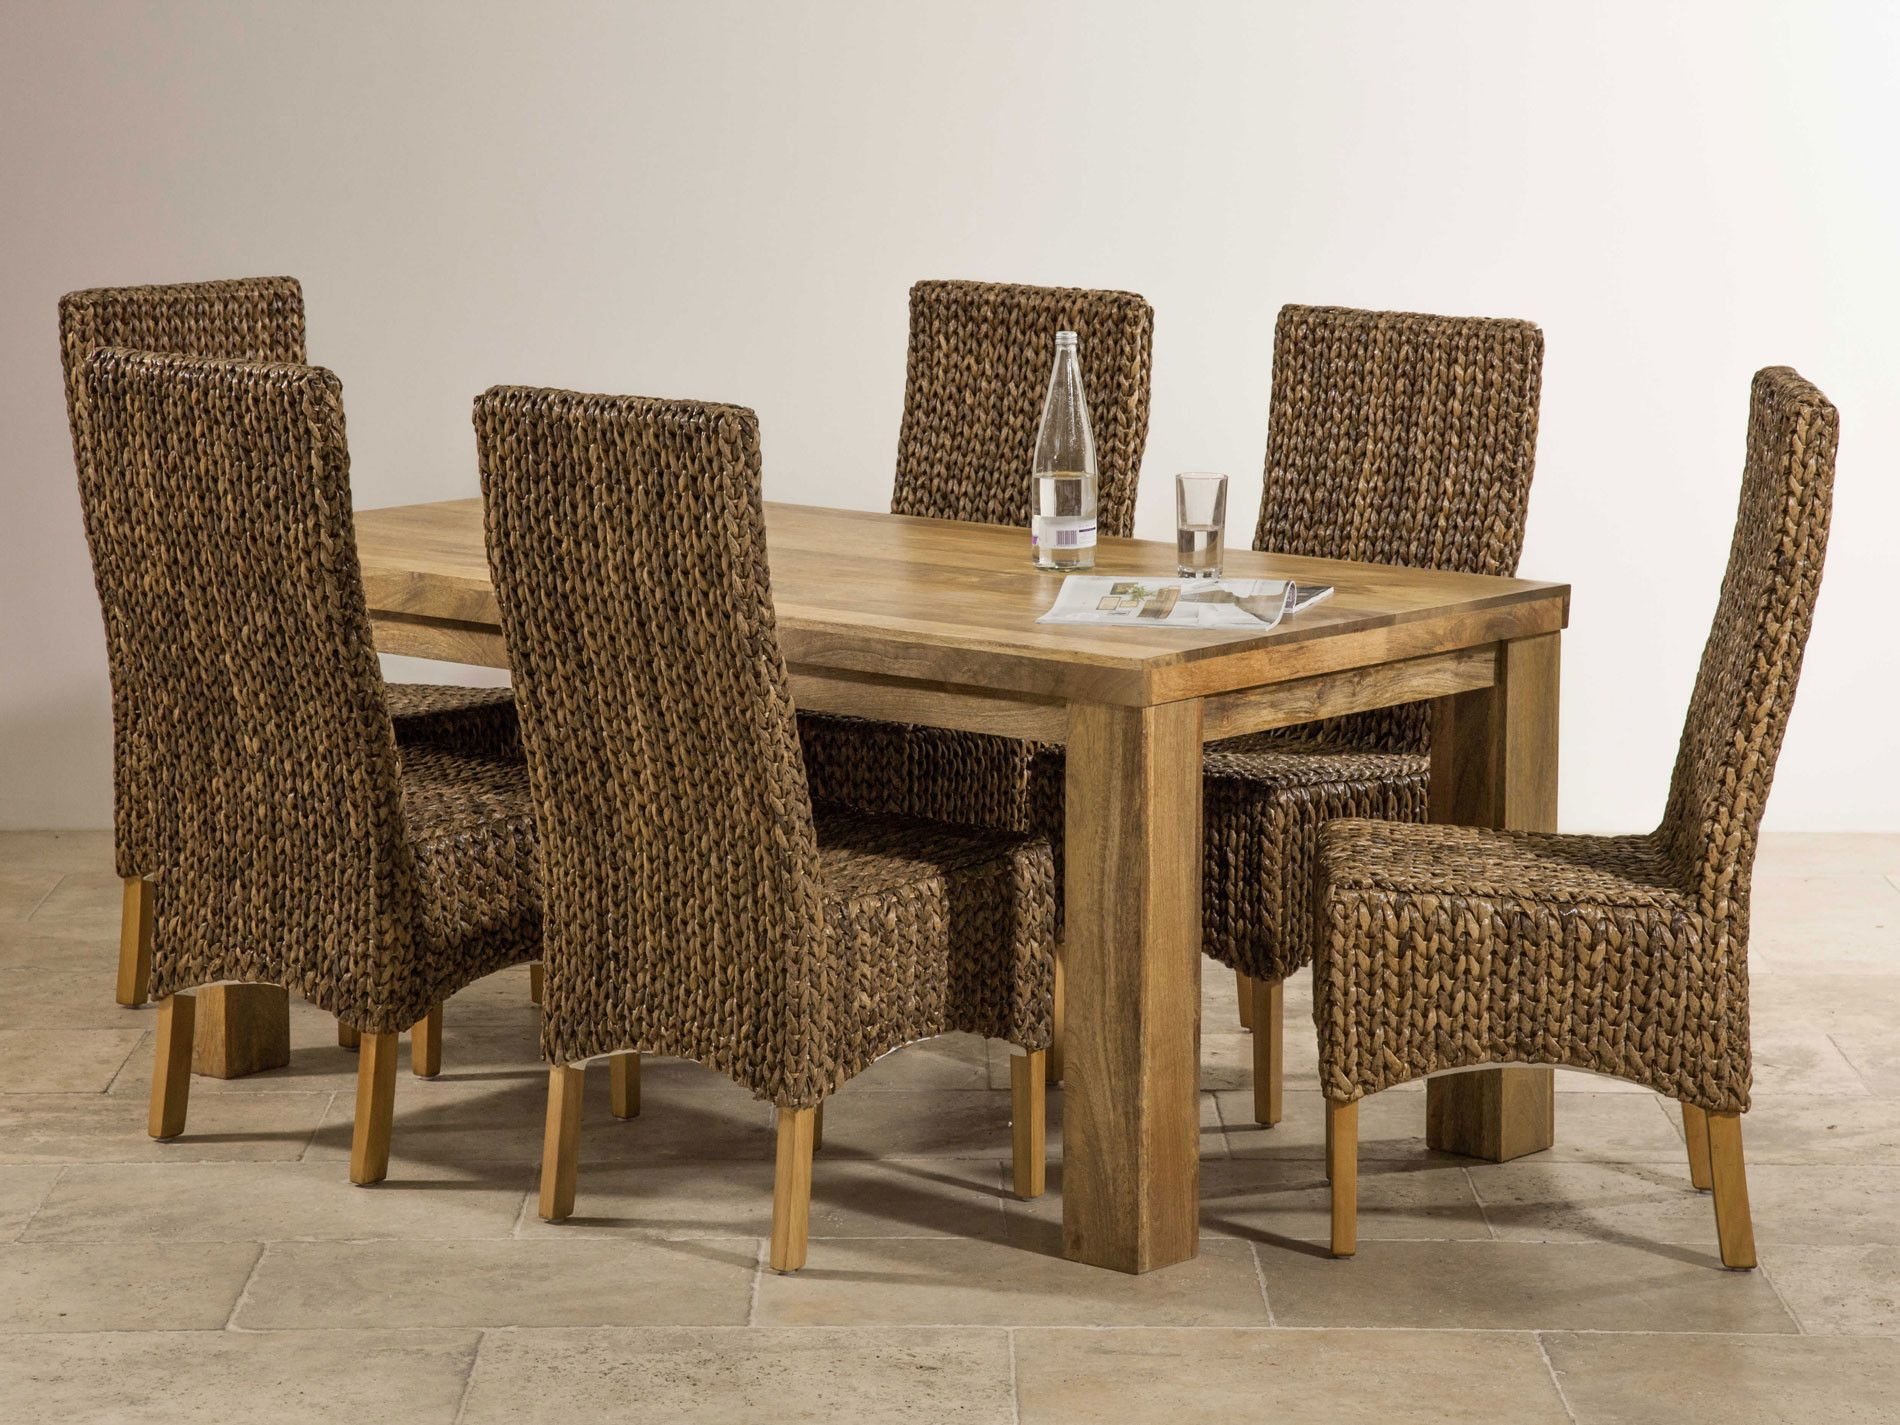 Captivating Mantis Light Natural Solid Mango Dining Set   Table With 6 High Back Grass  Chairs Ideas